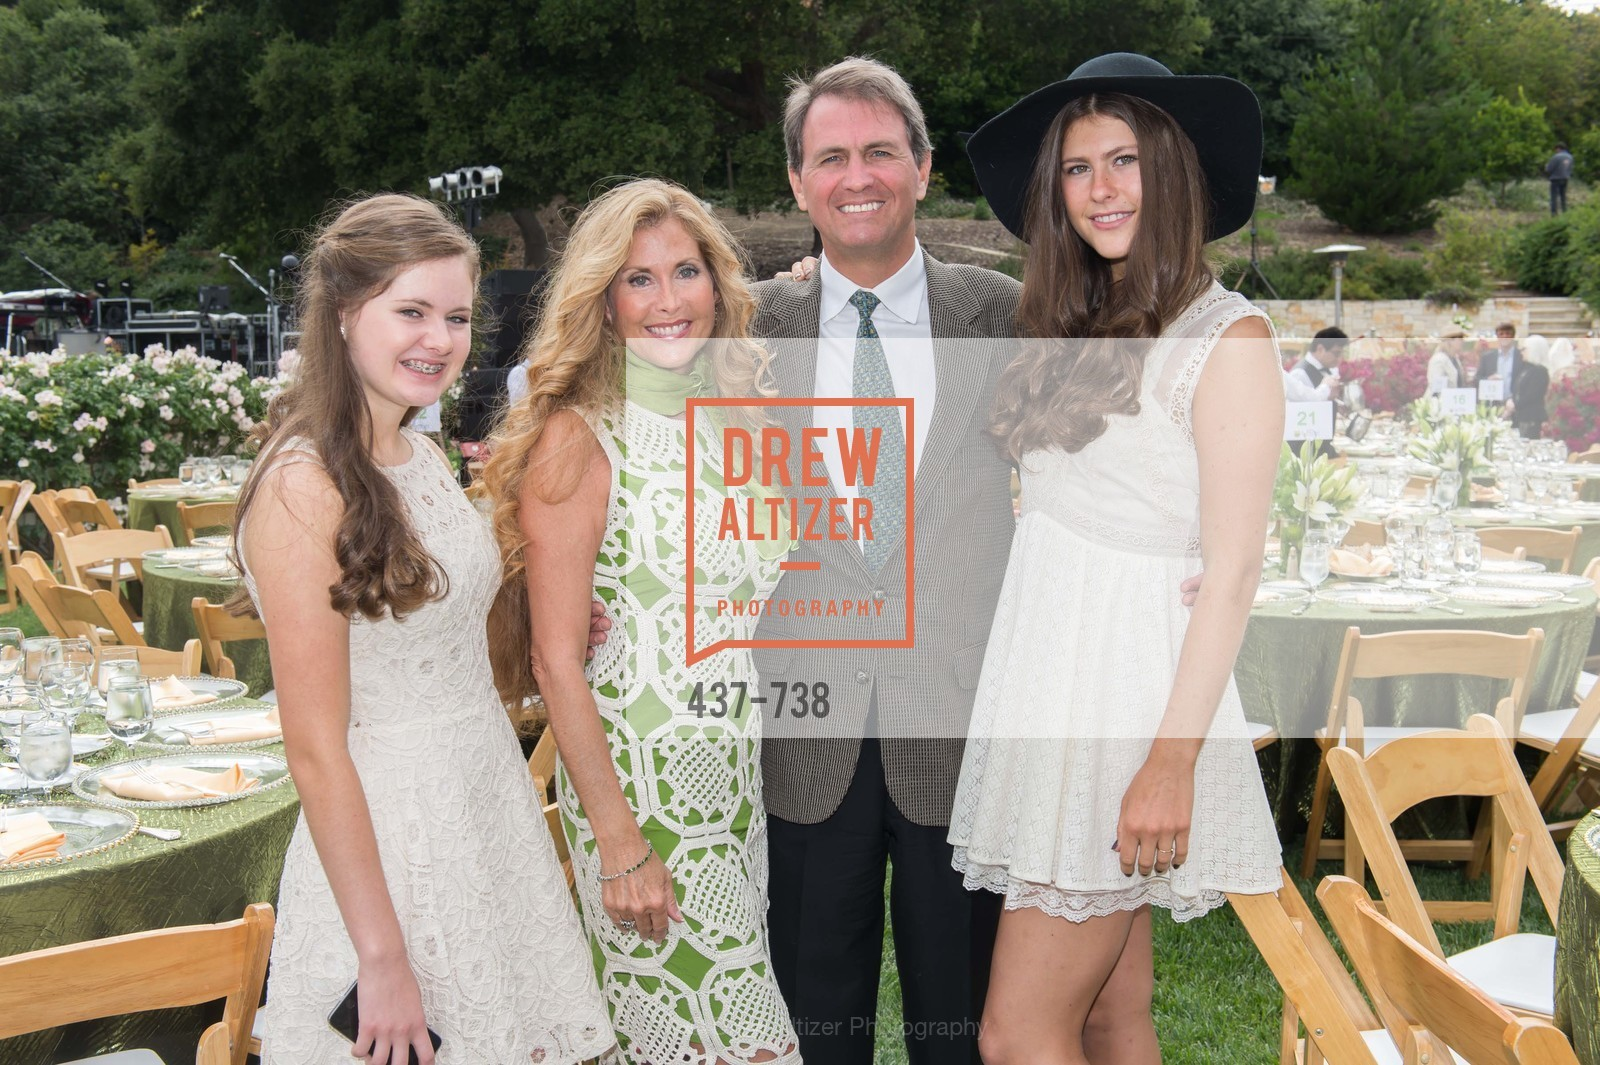 Kiana Cagan, Sherry Cagan, Laird Cagan, Kyla Cagan, LymeAid 2015, US, May 17th, 2015,Drew Altizer, Drew Altizer Photography, full-service agency, private events, San Francisco photographer, photographer california